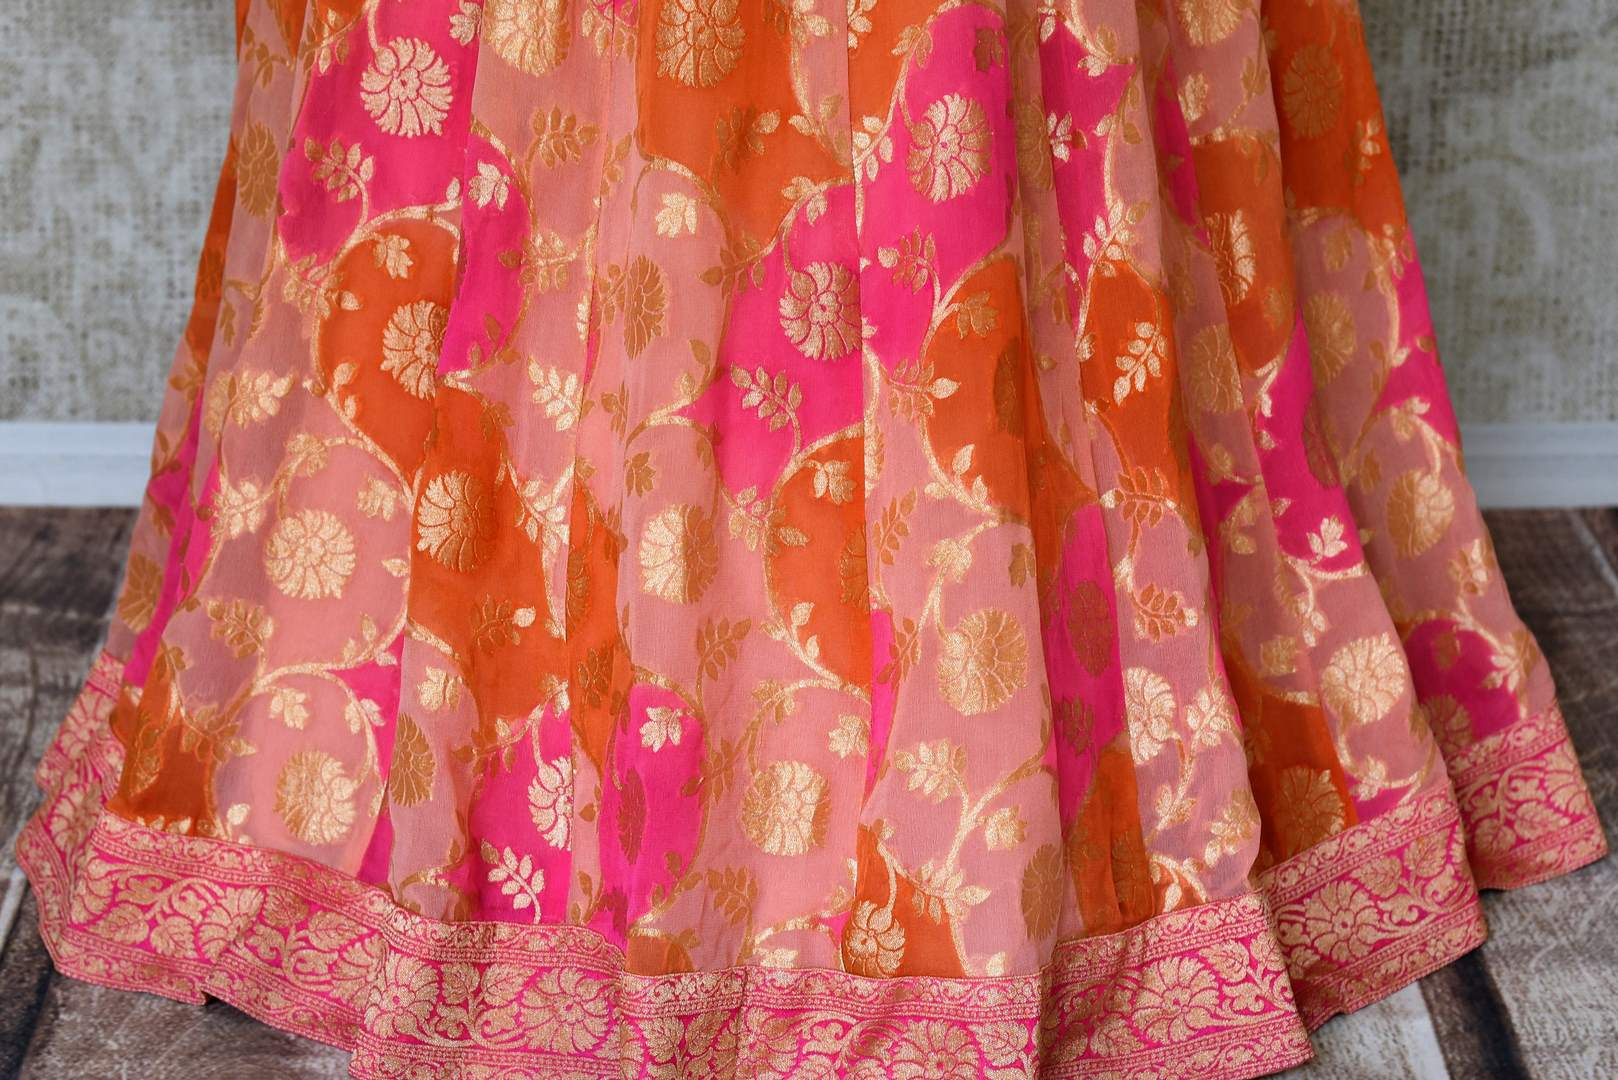 Buy pink georgette khaddi lehenga online in USA with one shoulder top. Make every occasion special with beautiful Indian dresses, wedding lehengas from Pure Elegance Indian fashion store in USA. You can also browse through our website and shop online.-skirt